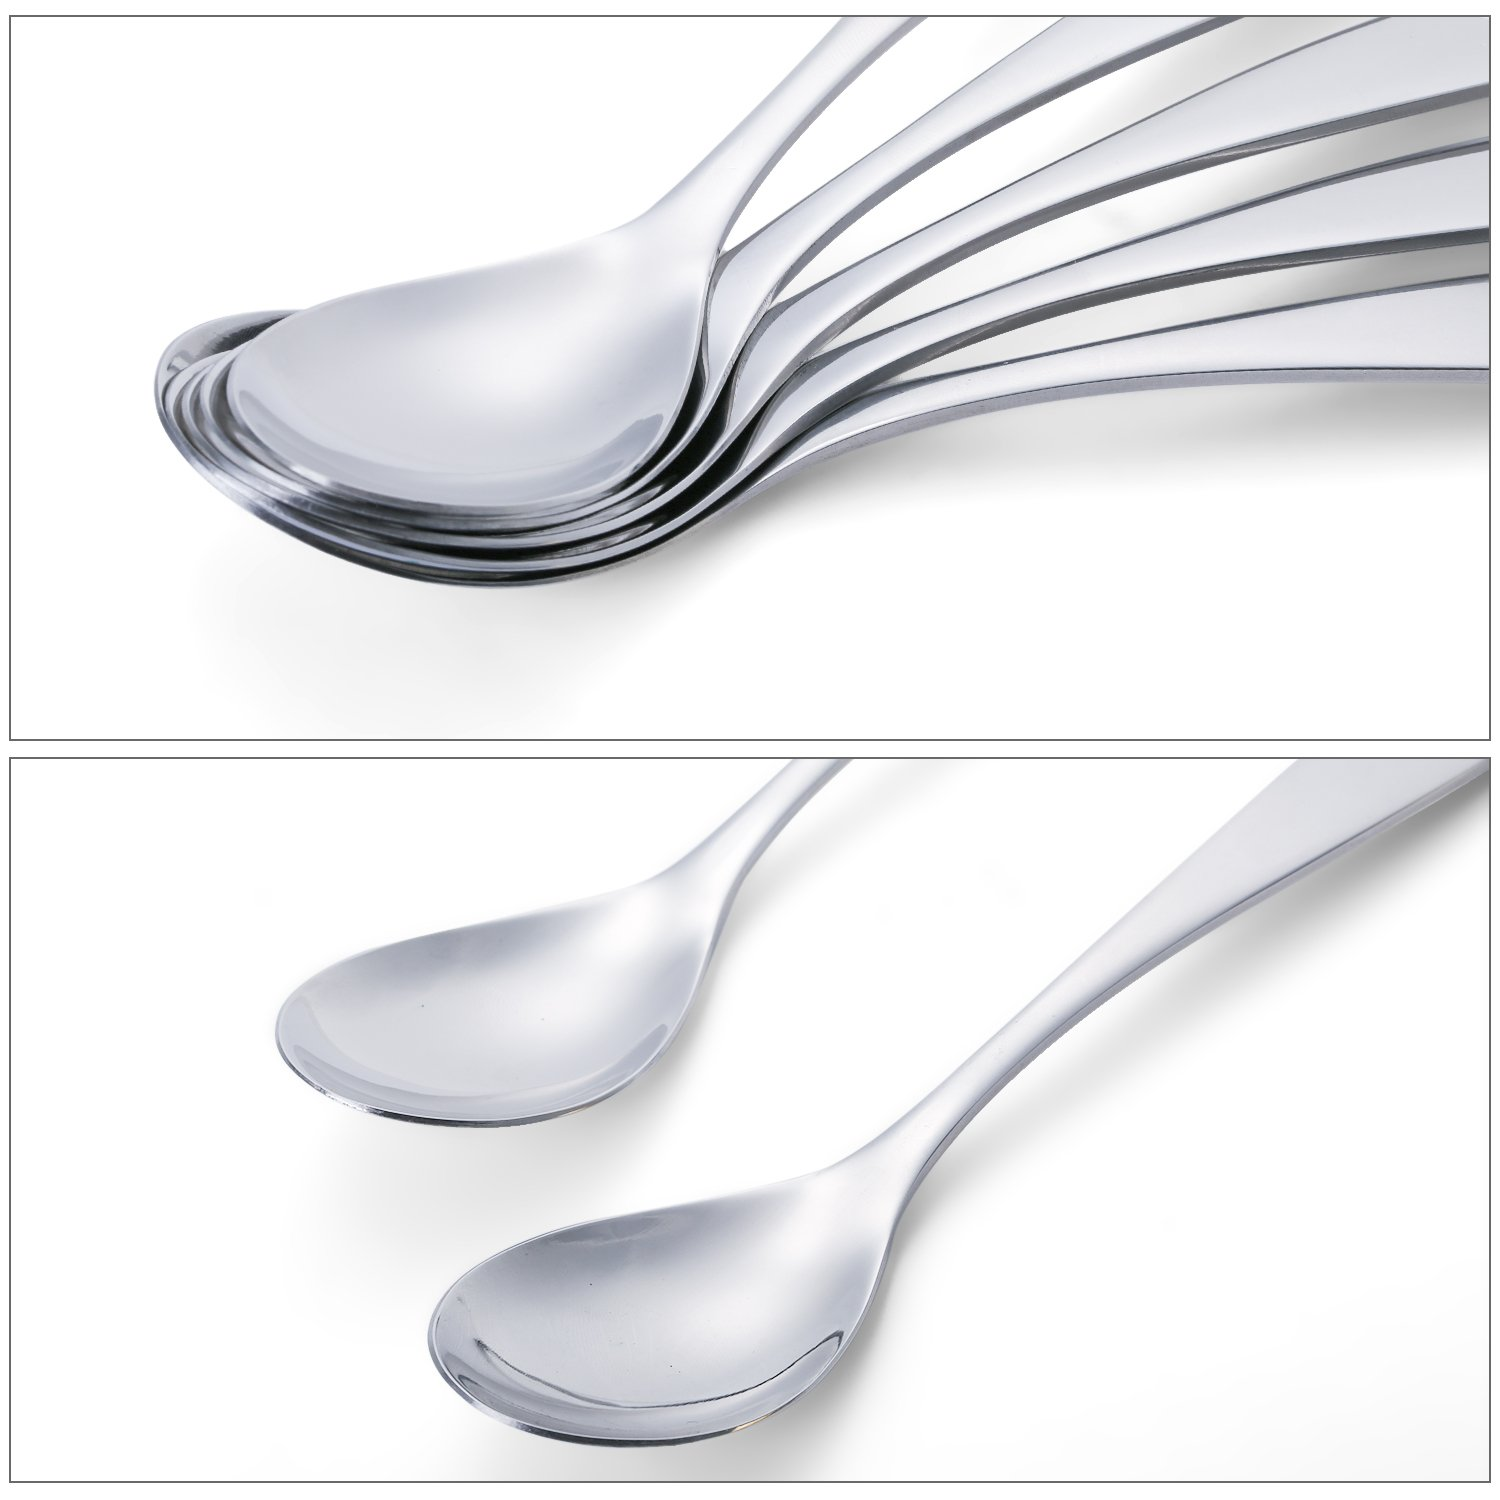 144  BOUILLON SPOONS WINDSOR FLATWARE 18//0 STAINLESS FREE SHIPPING US ONLY